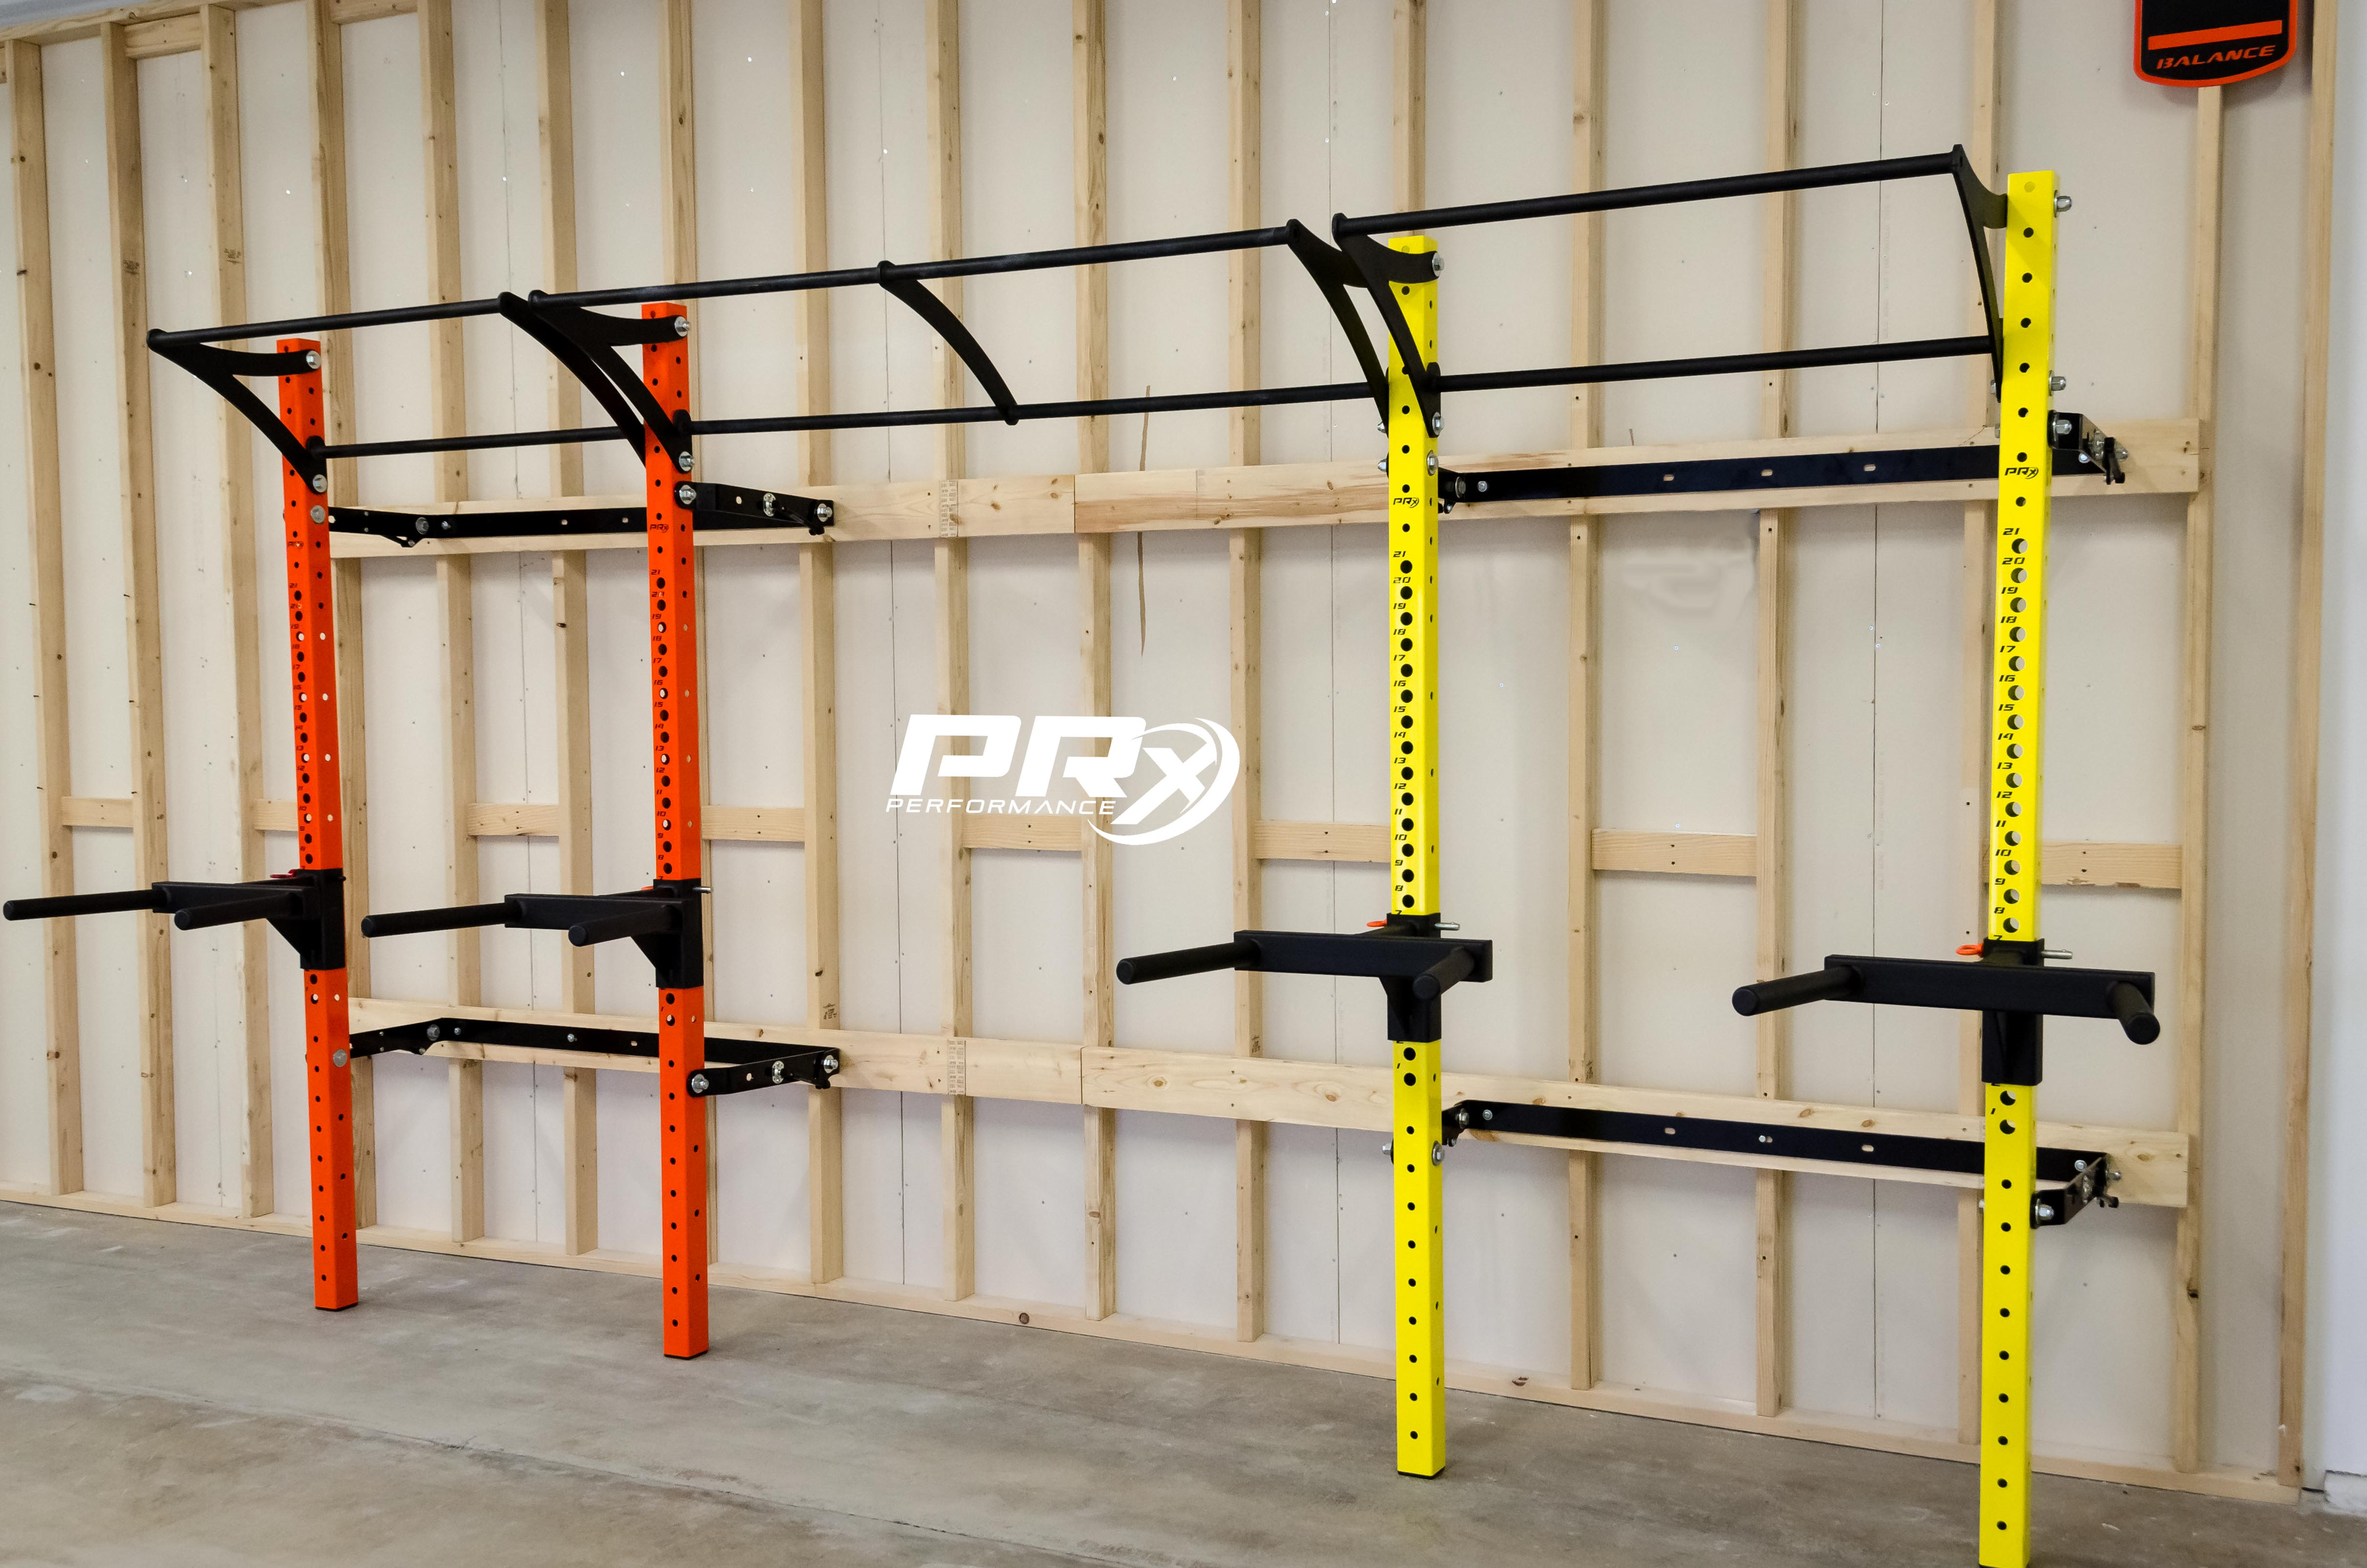 prx performanceRacks Rigs #16